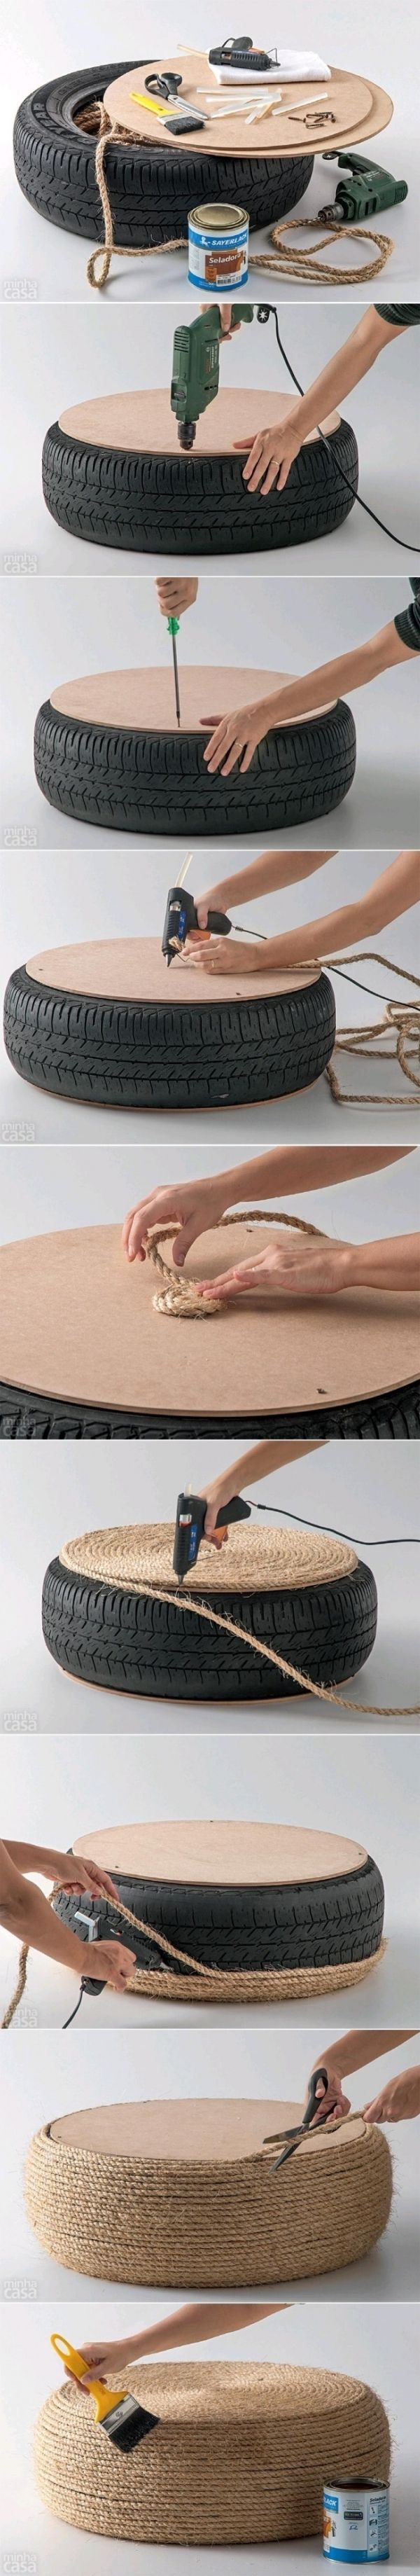 Creative And Useful Popular DIY Ideas | via:topdreamer.com  ================